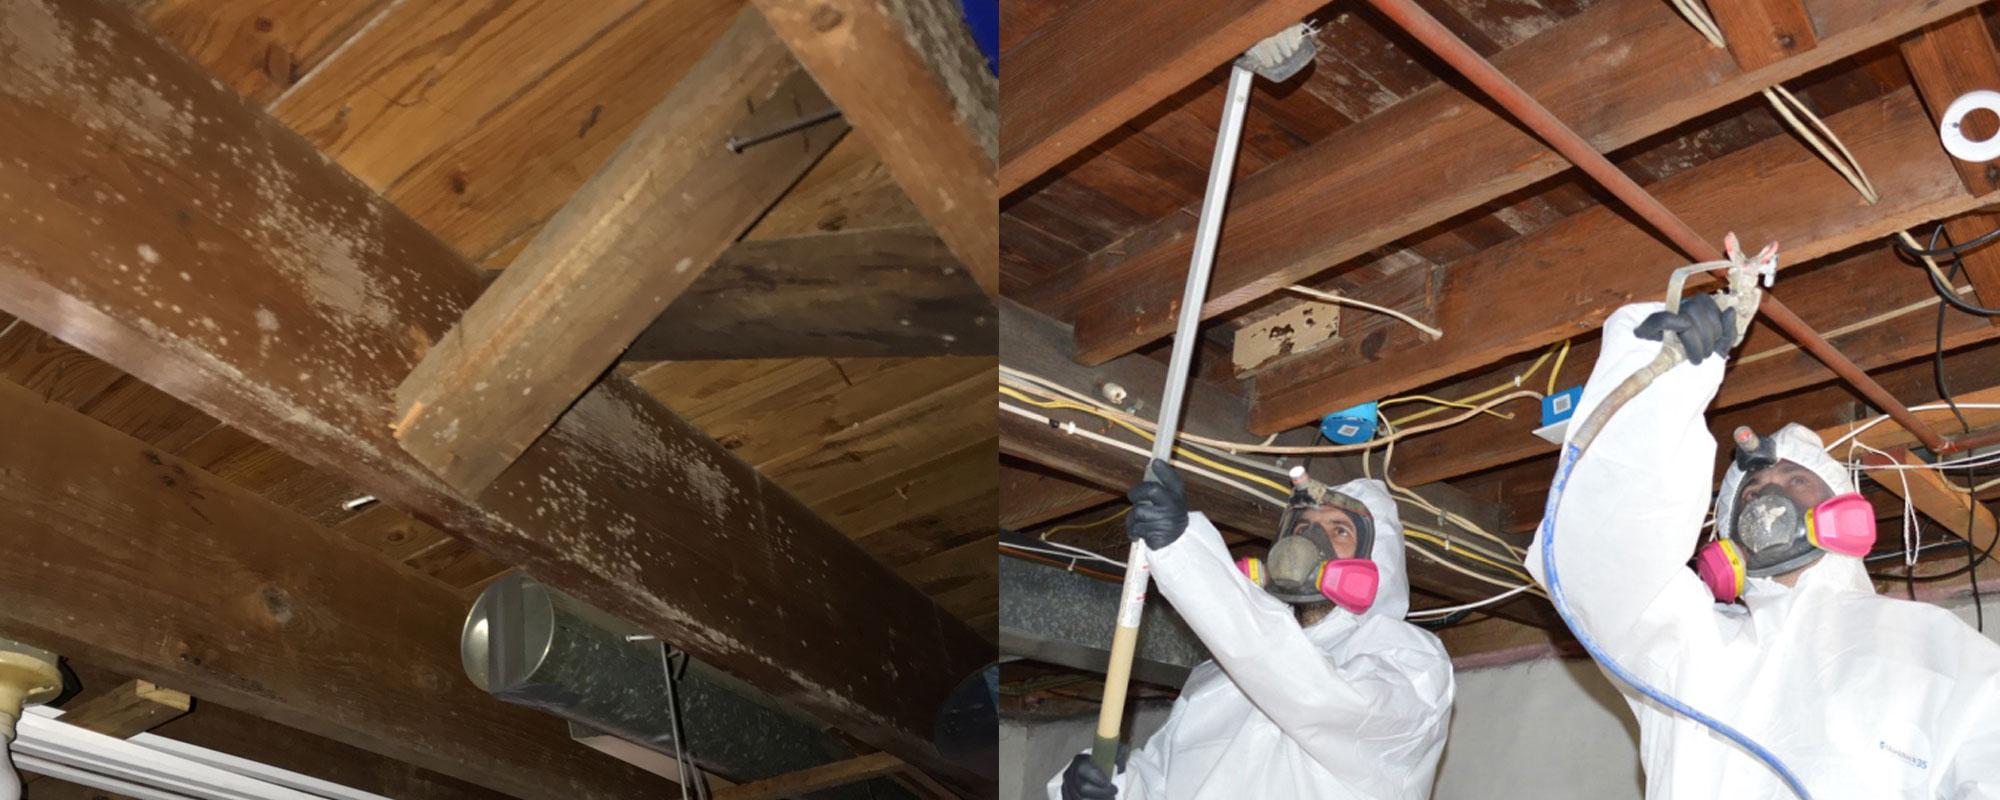 Basement-Mold-Remediation-NJ